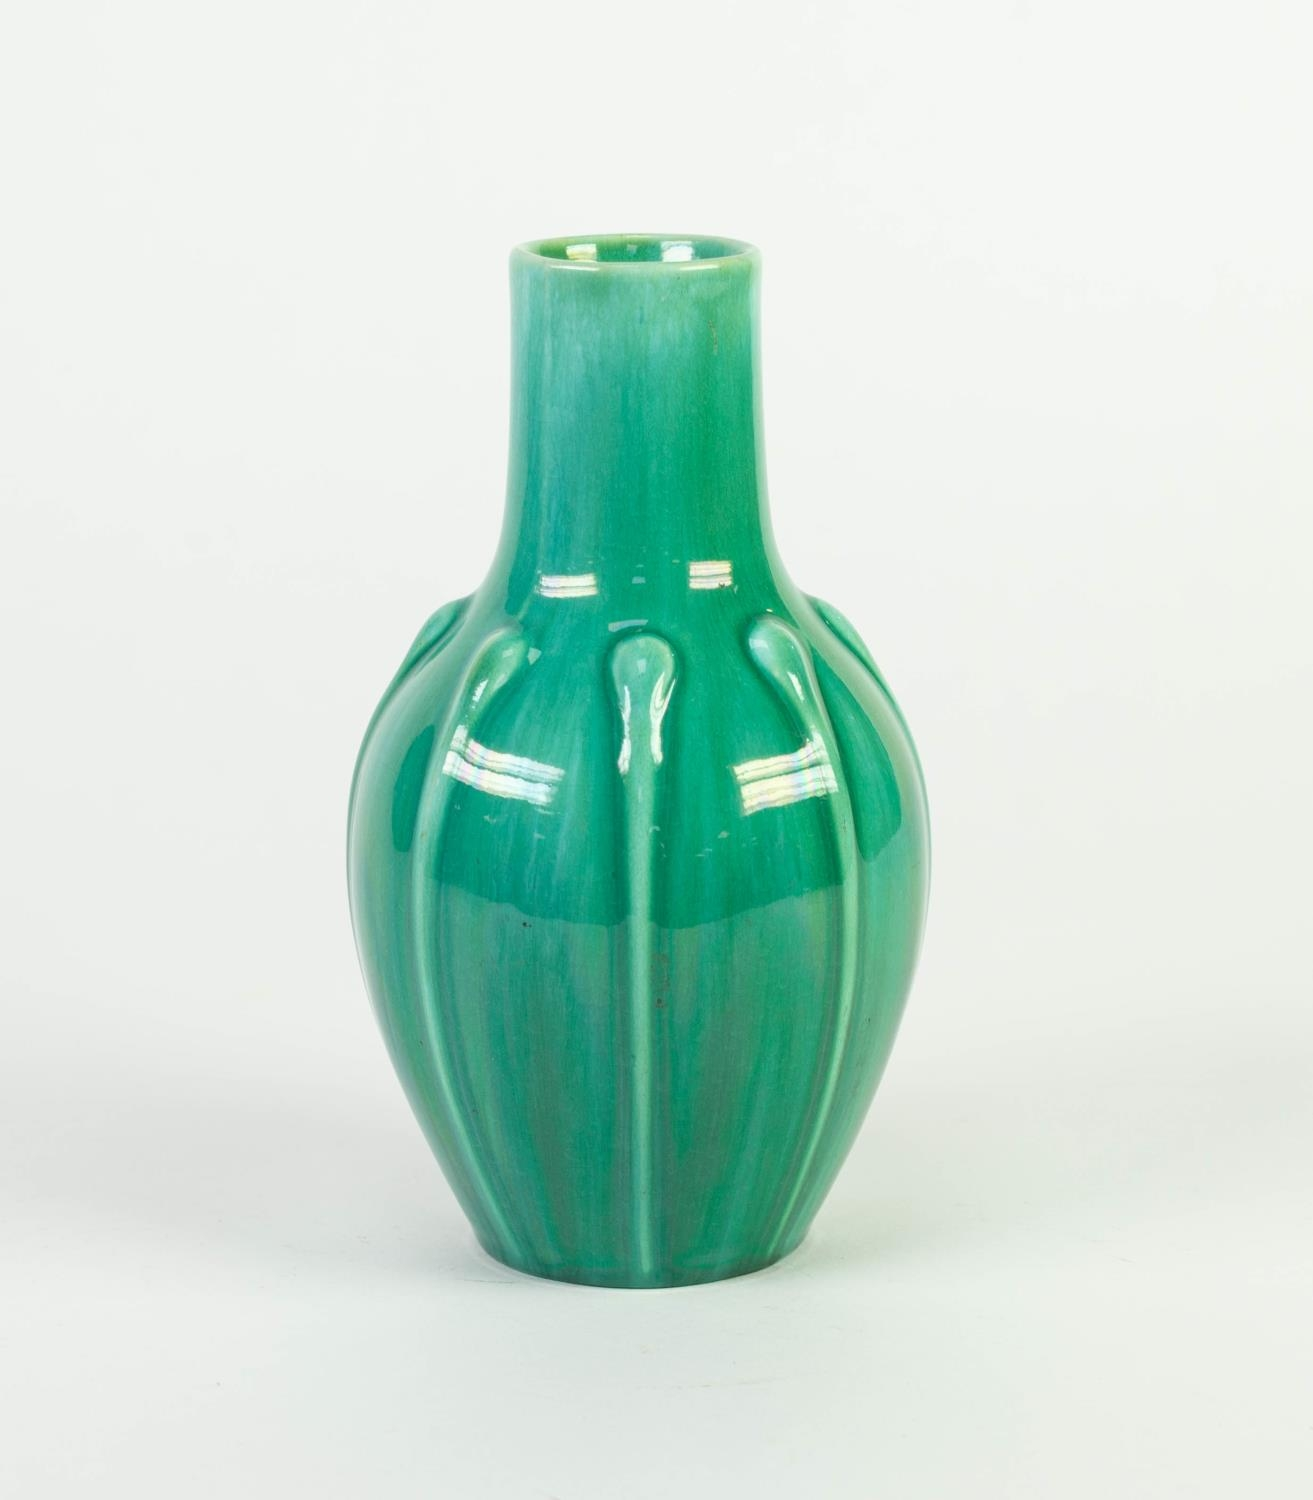 PILKINGTONS GREEN VEINED OPALESCENT GLAZED MOULDED POTTERY VASE, of ovoid form with slightly